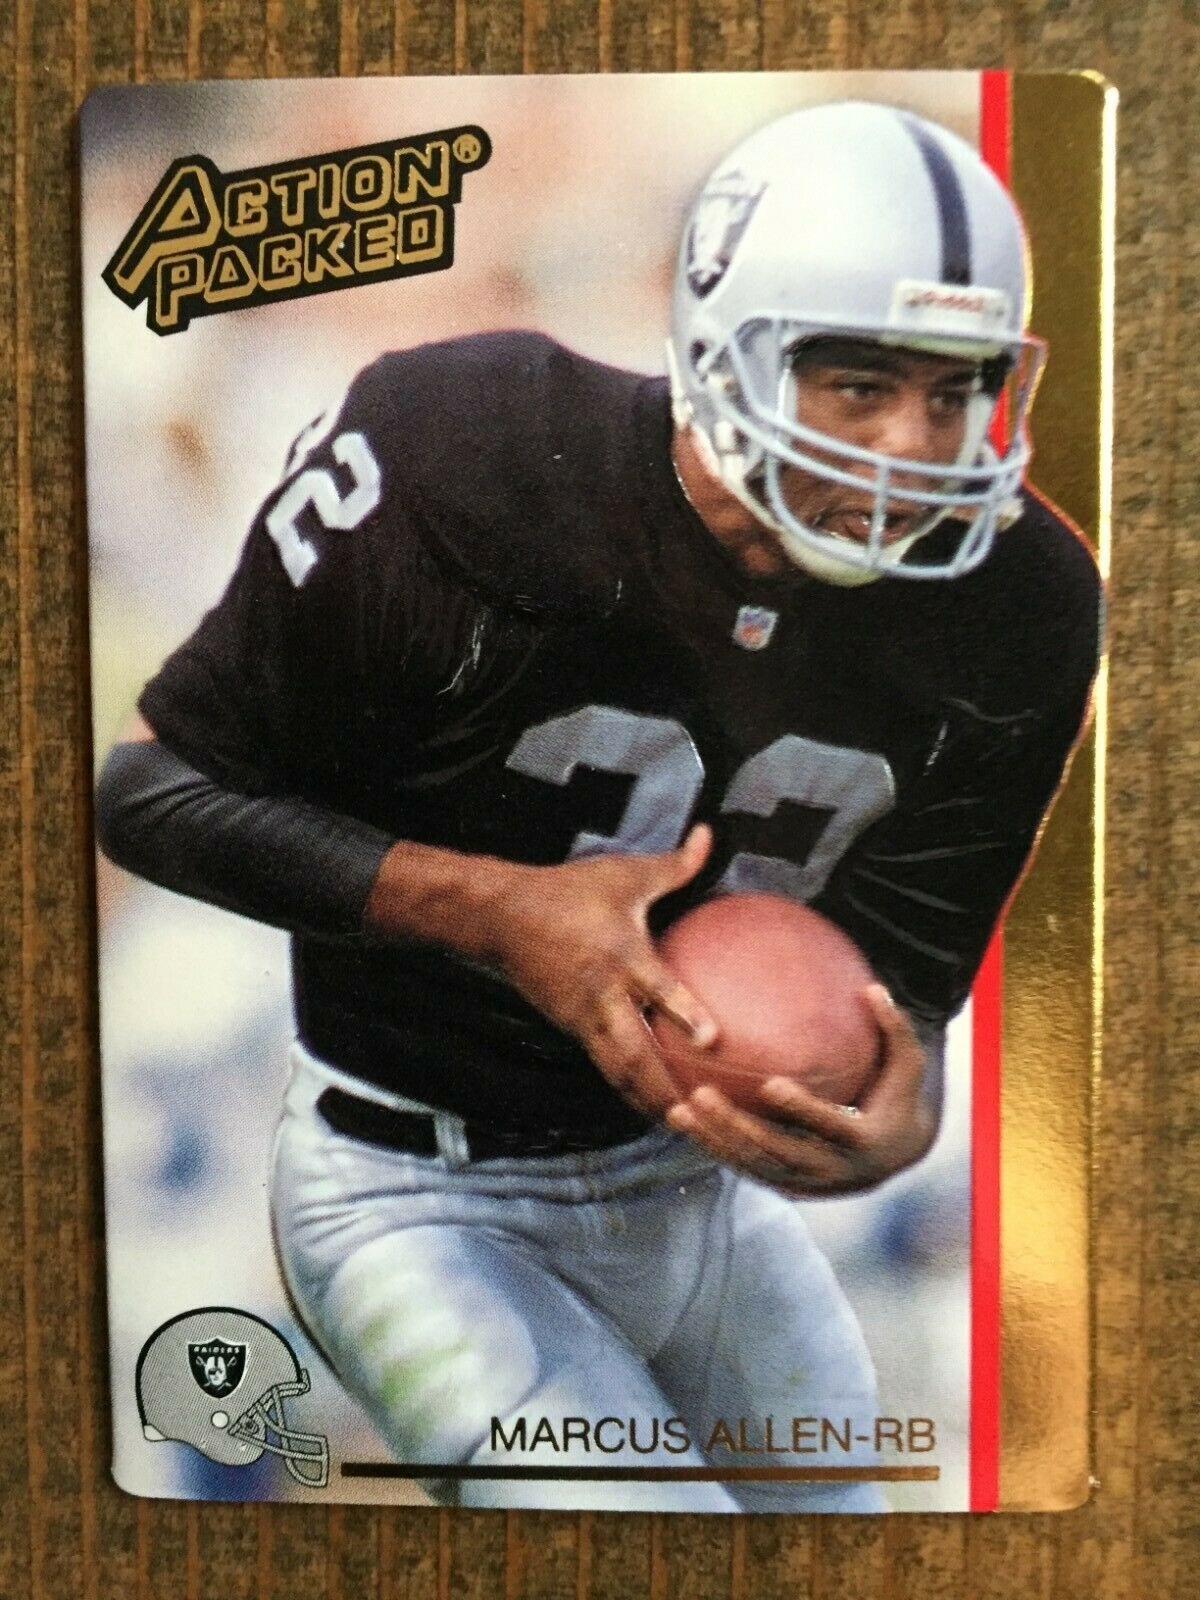 1992 Hi Pro Action Packed Marcus Allen Raiders Hall Of Fame Nm Nice In 2020 Football Helmets Football Cards Marcus Allen